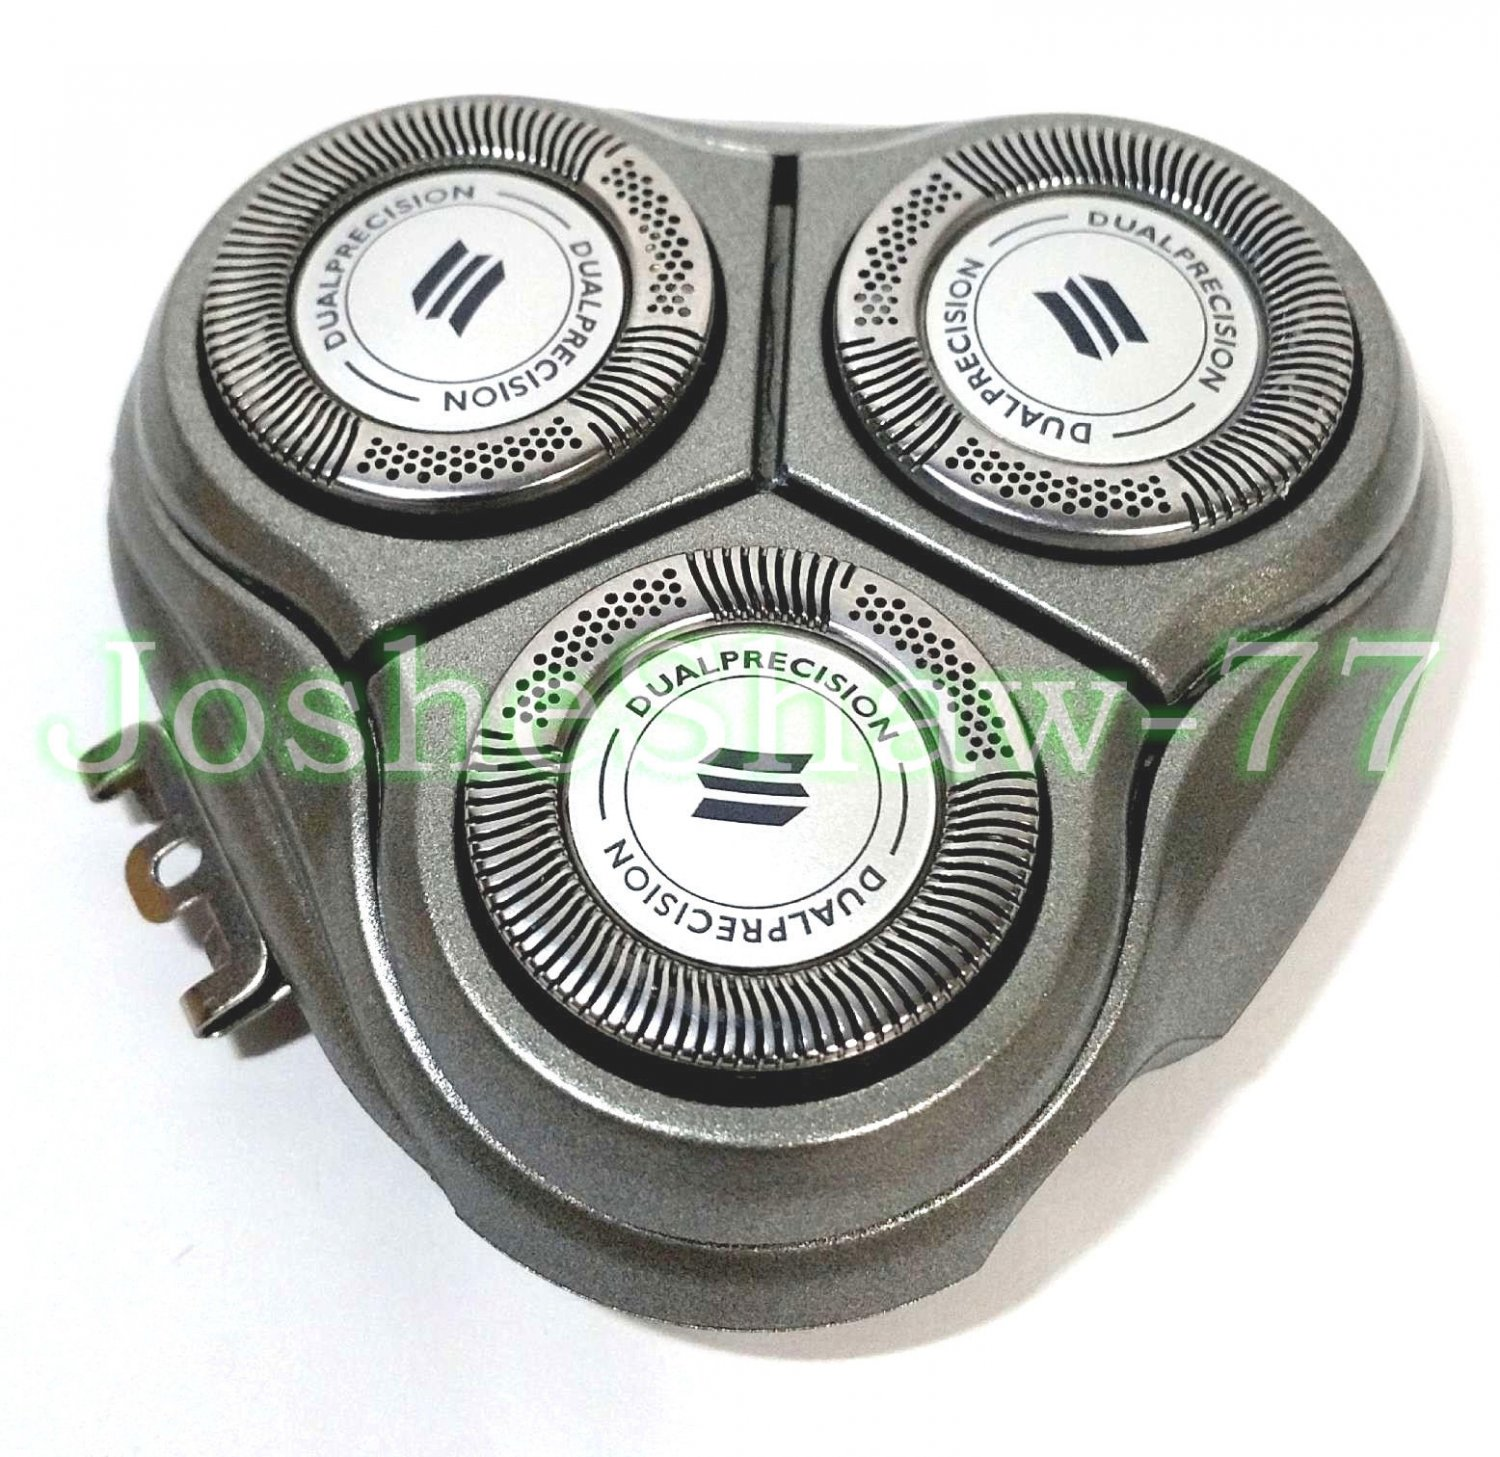 HQ9 HEAD for Philips Norelco Speed XL ALL 8200XL 8240XL 8250XL 8260XL 8270 8280